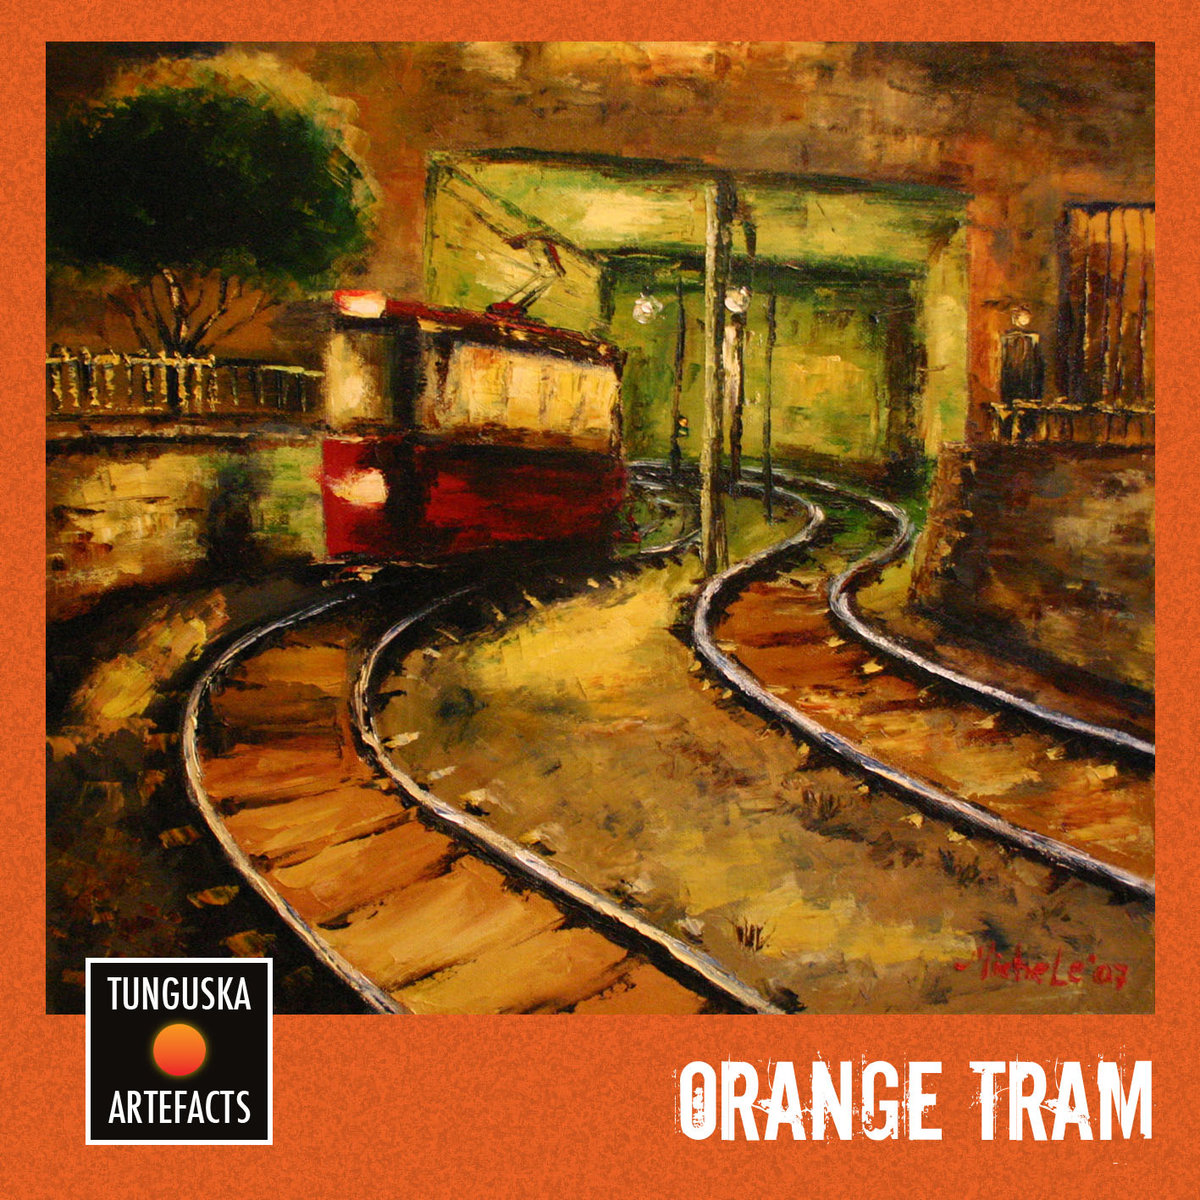 Tunguska Artefacts - Orange Tram @ 'Tunguska Artefacts - Orange Tram' album (electronic, ambient)